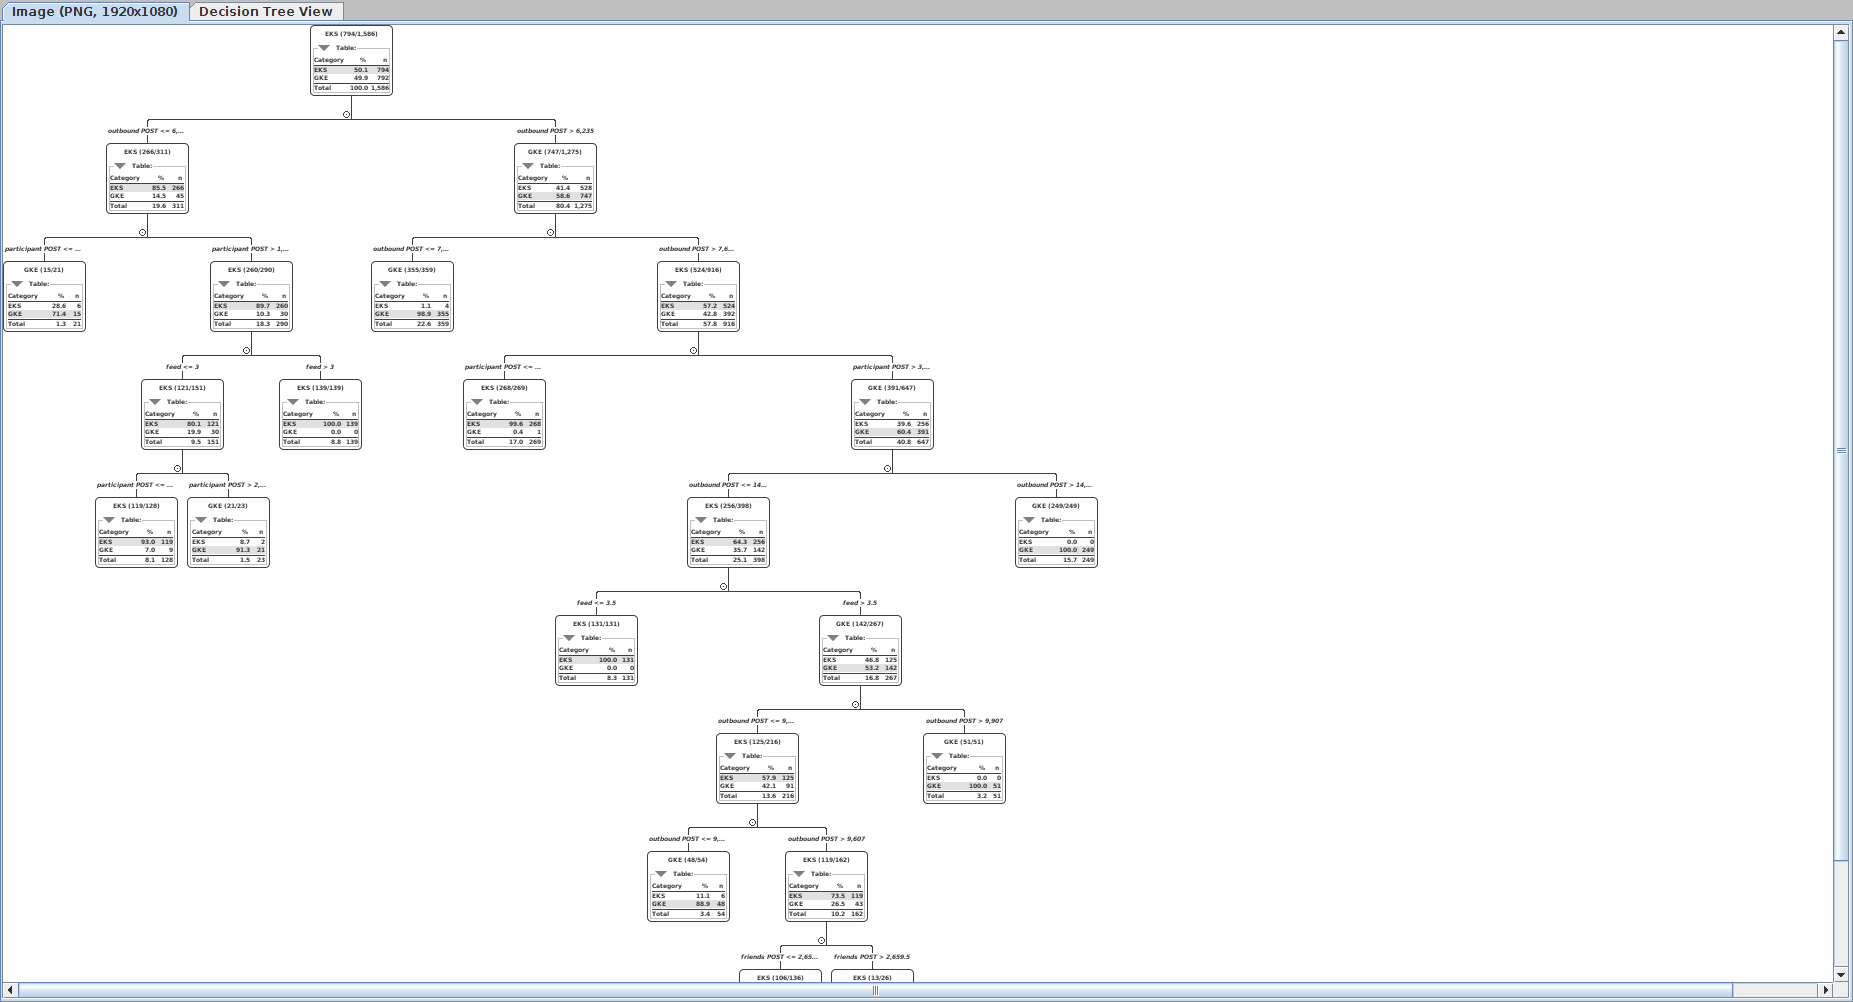 KNIME decision tree predicting cloud vendor based on throughput